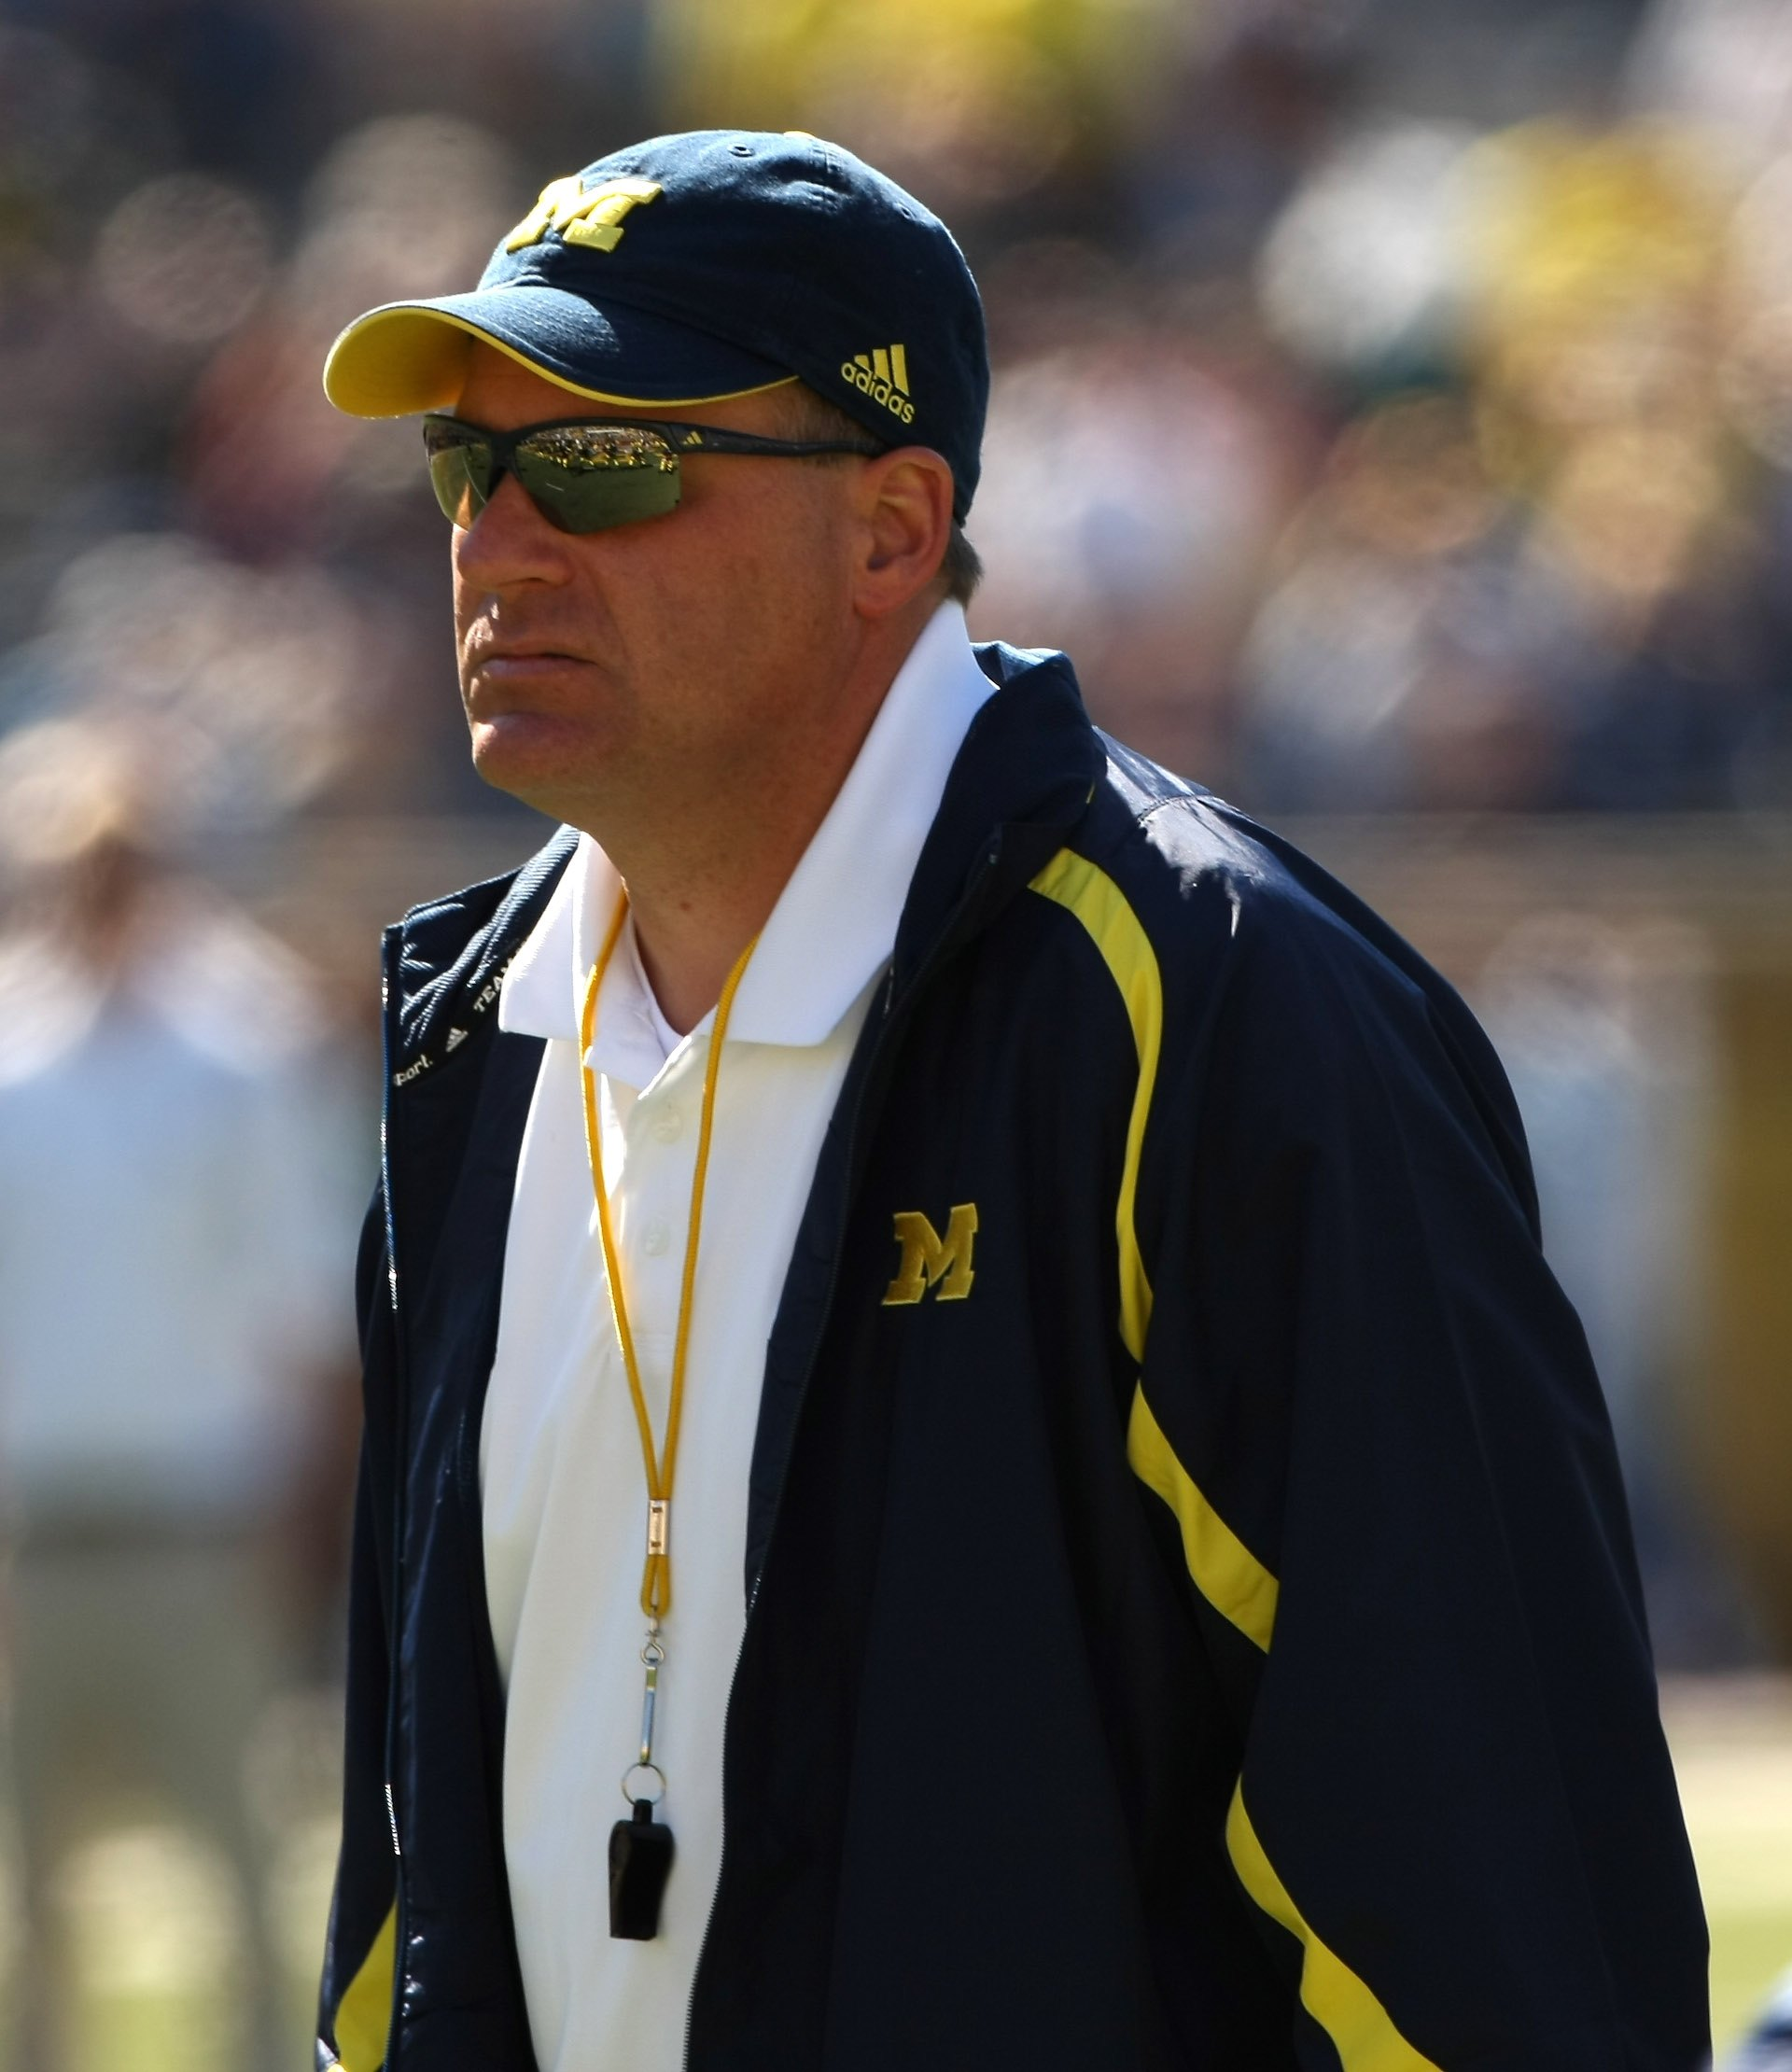 ANN ARBOR, MI - SEPTEMBER 19:  Head coach Rich Rodriguez of the Michigan Wolverines watches warmups before the game with the Eastern Michigan Eagles at Michigan Stadium on September 19, 2009 in Ann Arbor, Michigan.  Michigan won 45-17.  (Photo by Stephen